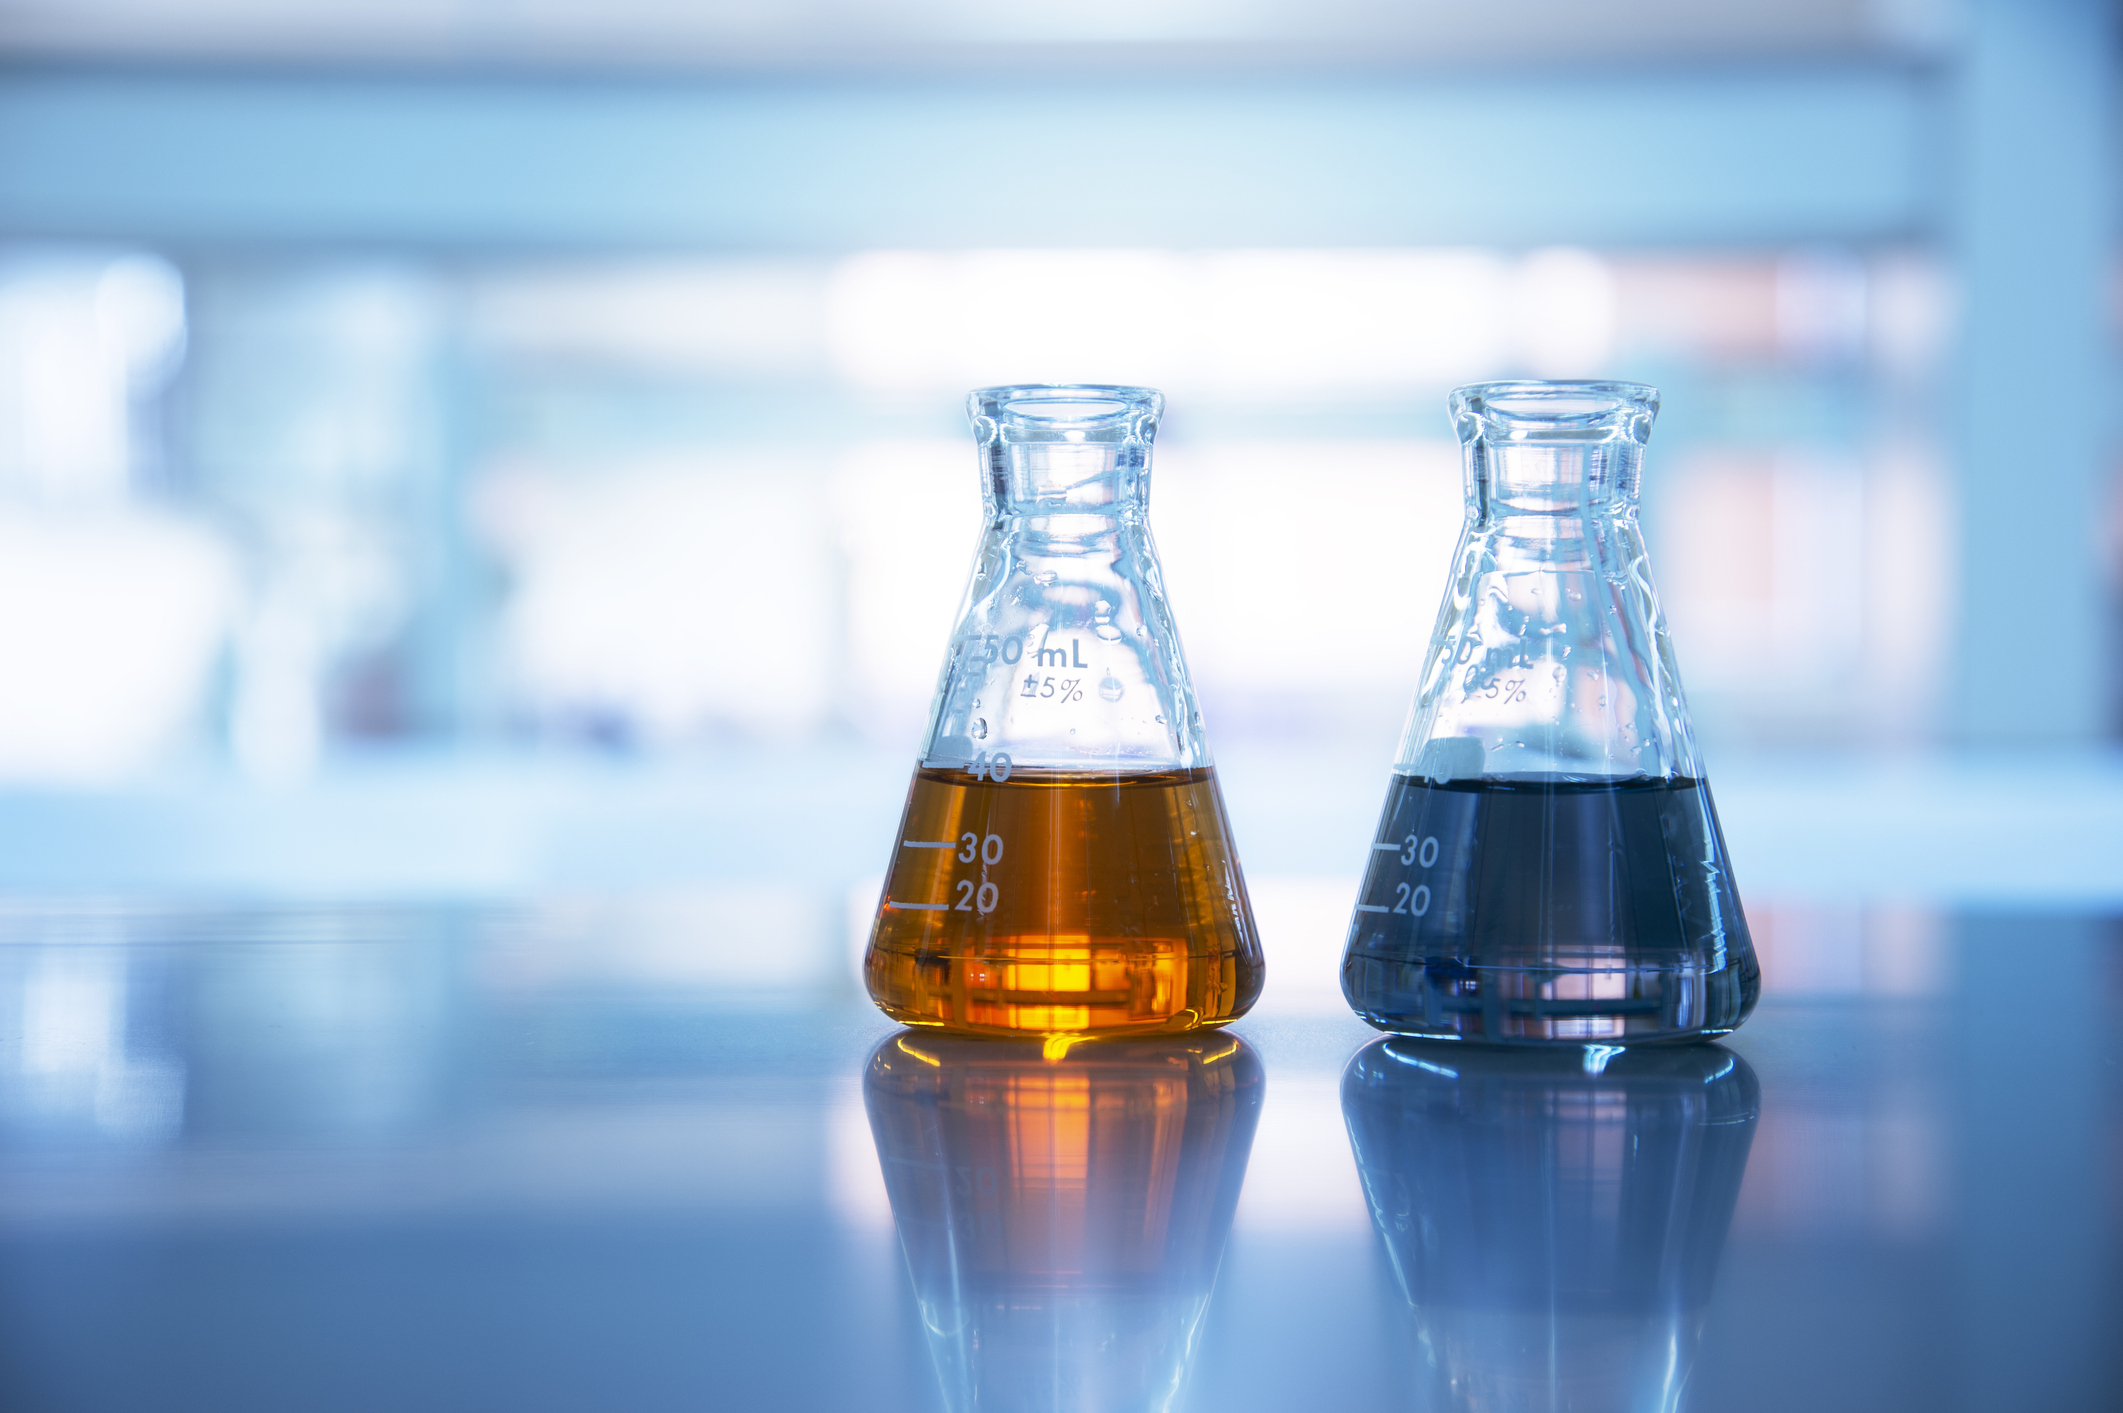 two glass flasks with orange and black solution in chemical science  laboratory background - Central Arizona College